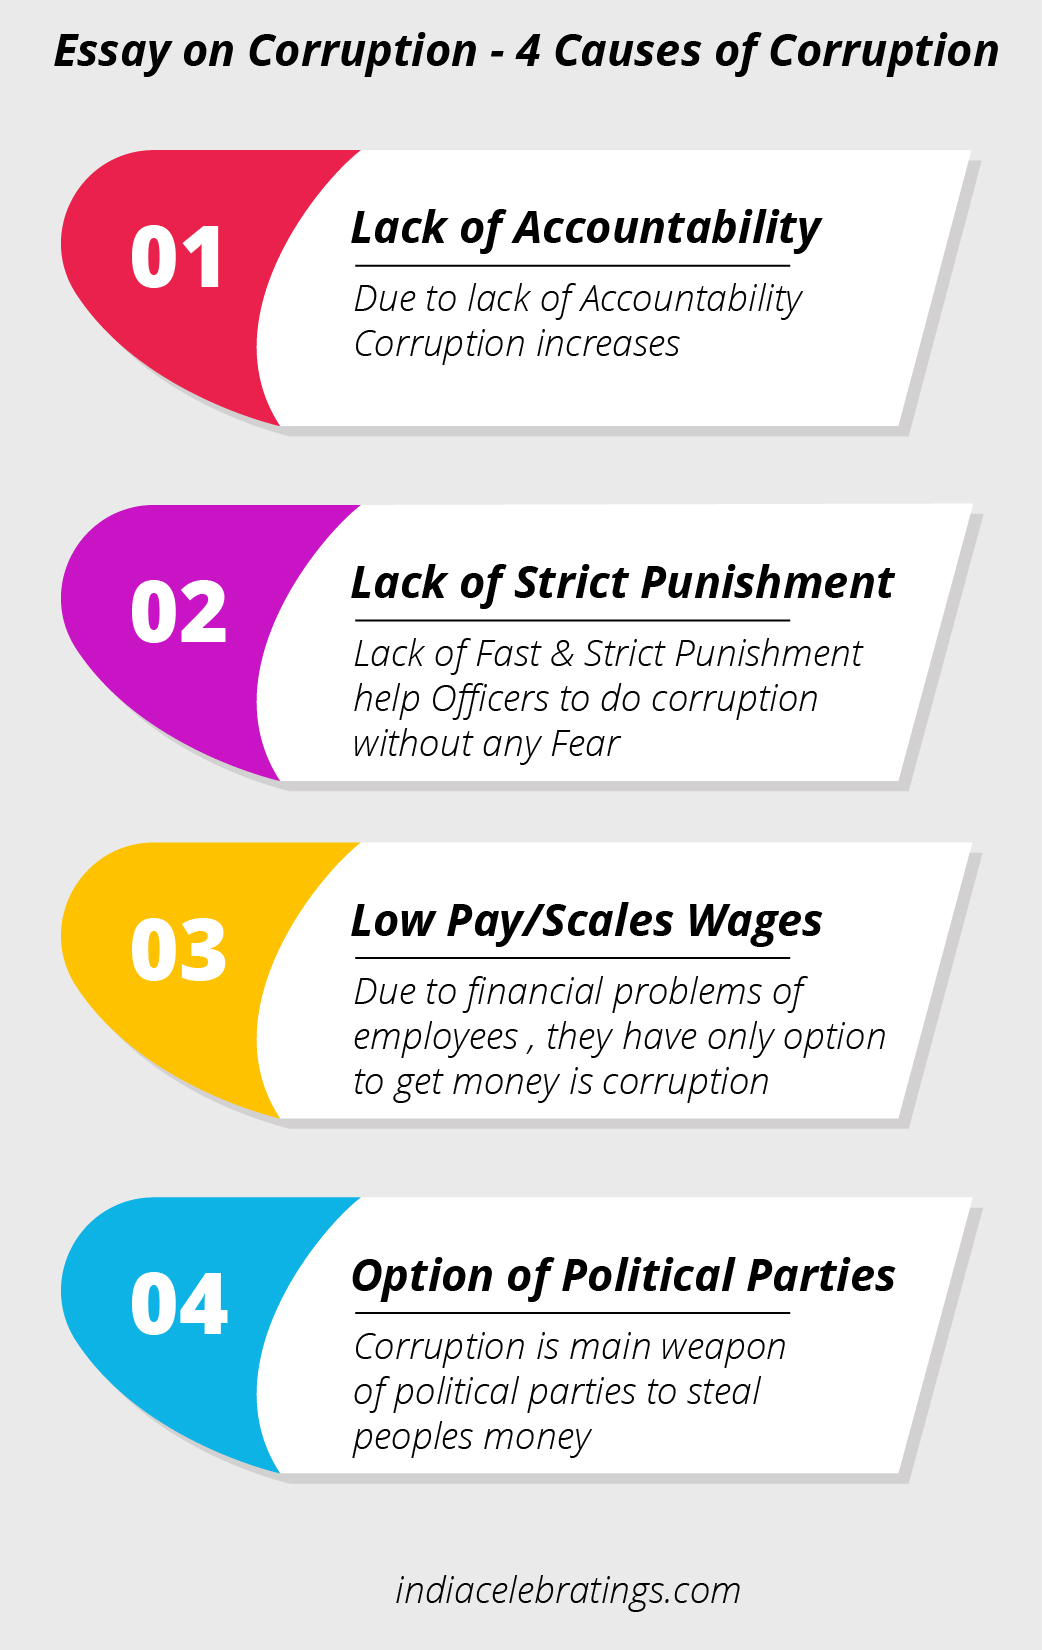 Essay on Corruption - 4 Causes of Corruption